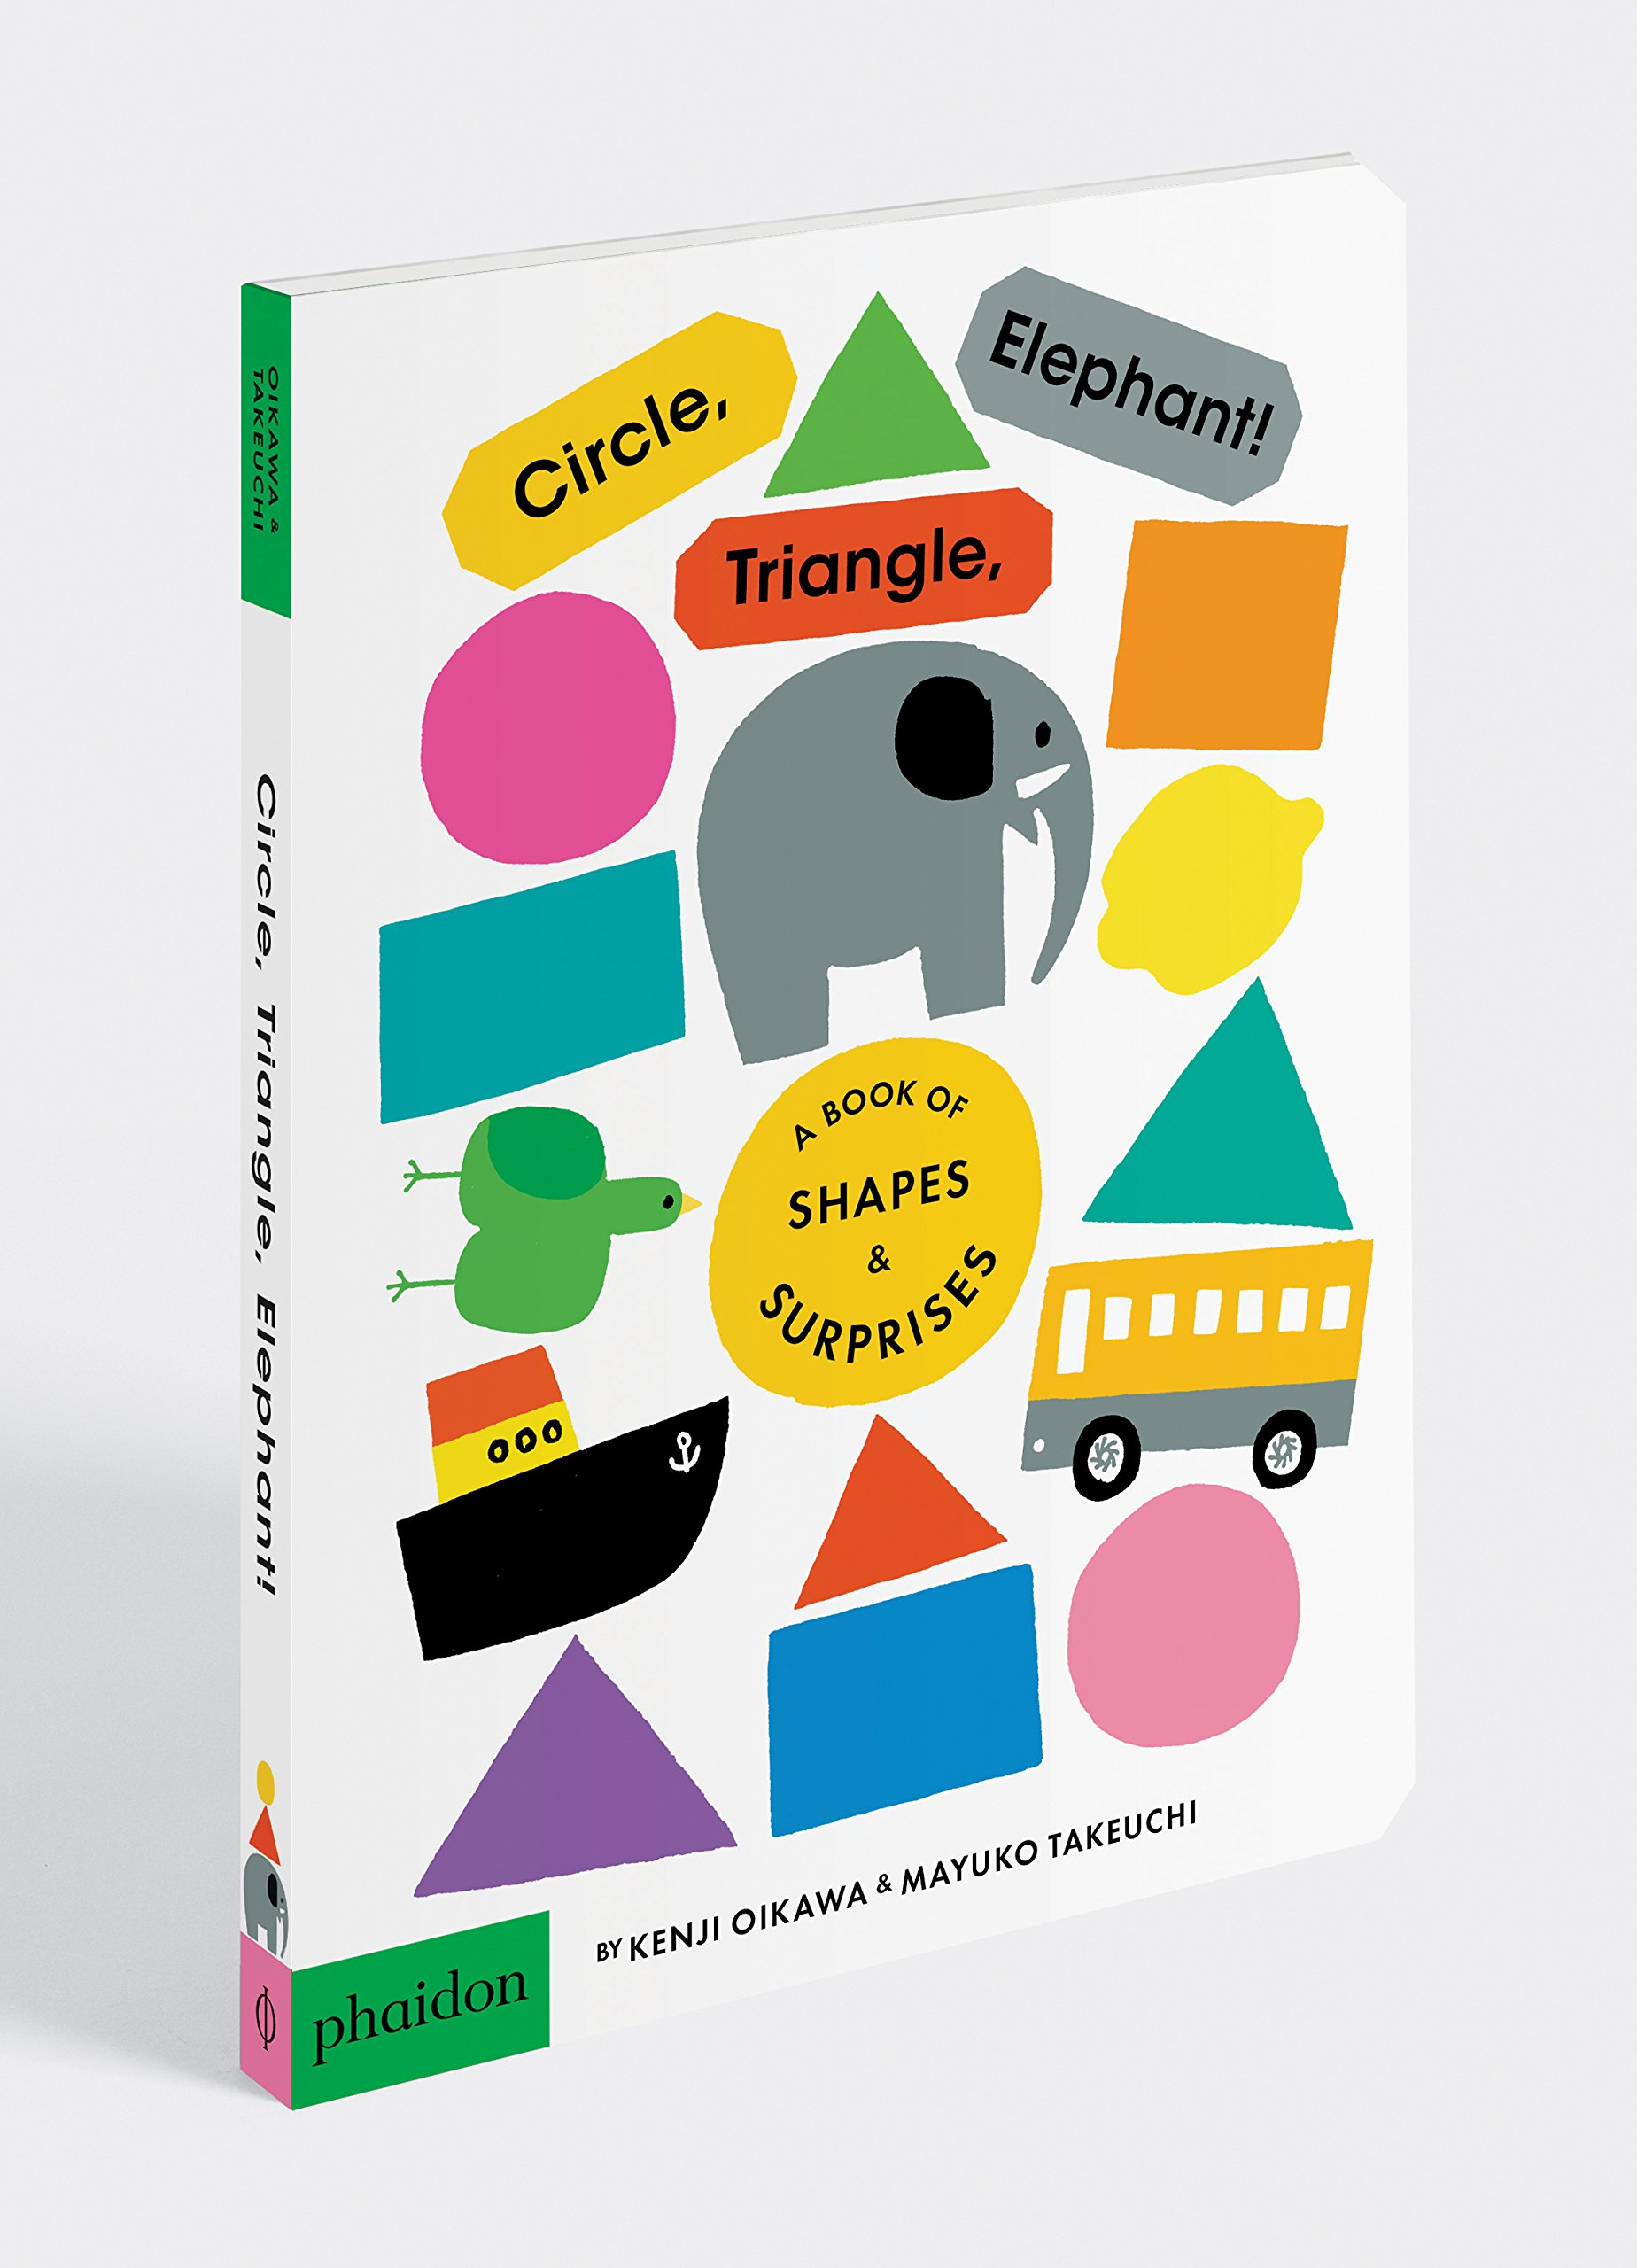 Amazon: Circle, Triangle, Elephant: A Book Of Shapes And Surprises  (9780714874111): Kenji Oikawa, Mayuko Takeuc: Books